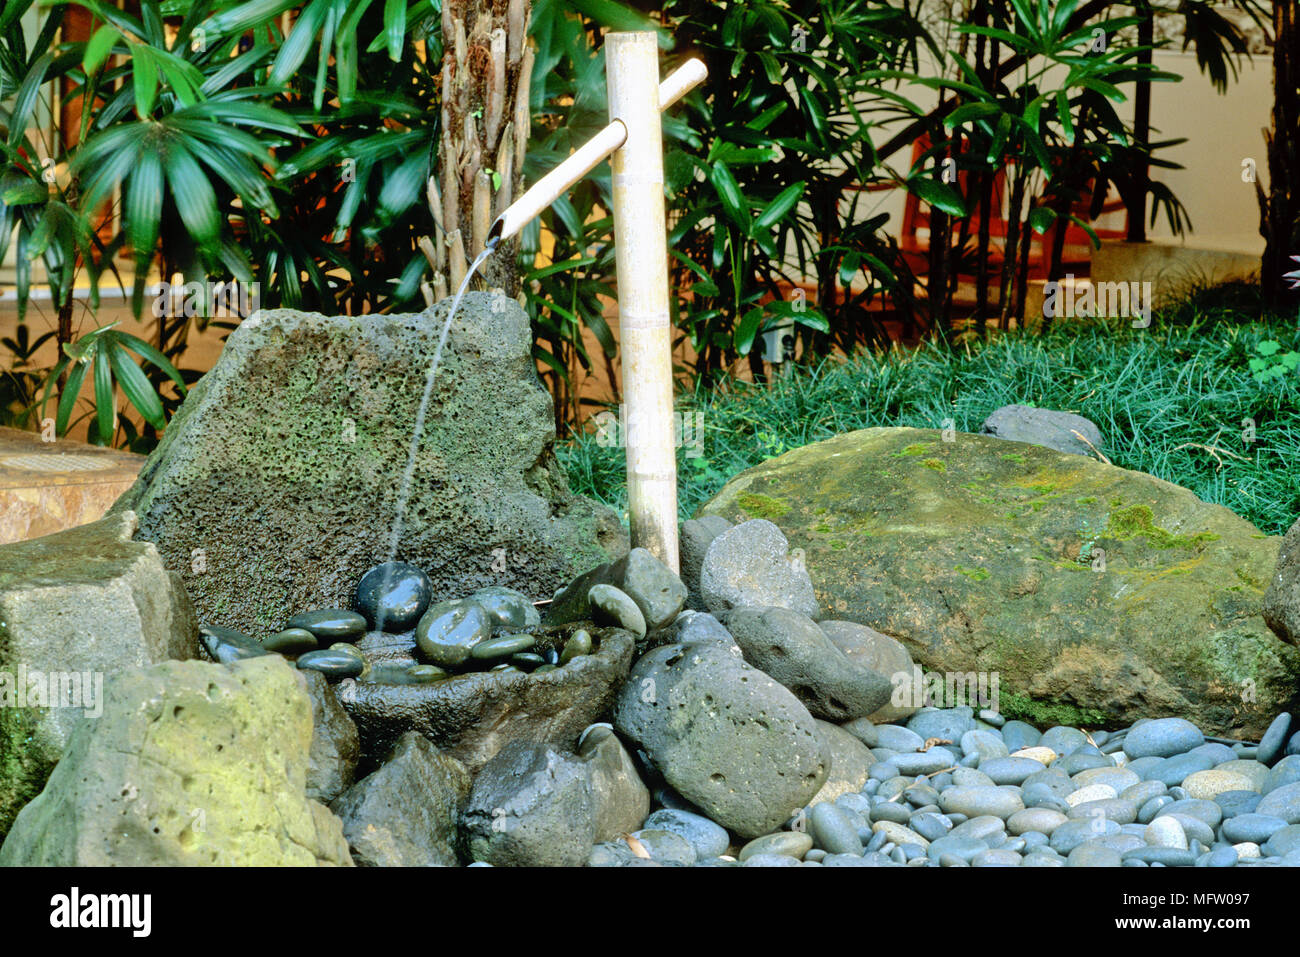 Japans Water Ornament.A Bamboo Water Feature In Japanese Style Garden Stock Photo